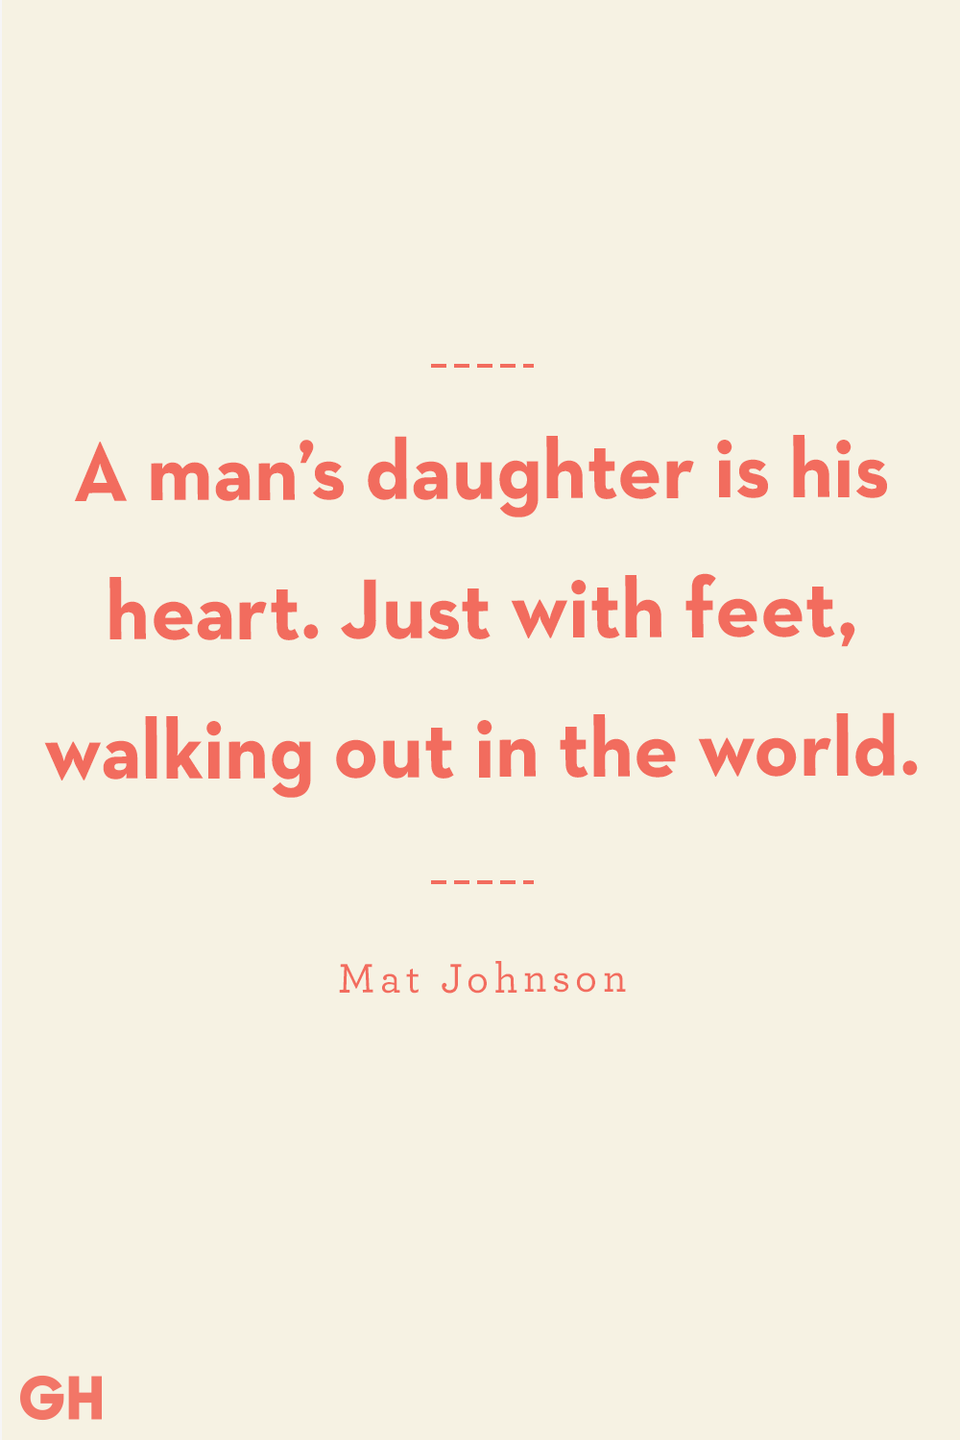 "<p>A man's daughter is his heart. Just with feet, walking out in the world.</p><p><strong>RELATED:</strong> <a href=""https://www.goodhousekeeping.com/holidays/fathers-day/g32701833/step-dad-quotes/"" rel=""nofollow noopener"" target=""_blank"" data-ylk=""slk:Heartwarming Stepdad Quotes to Share With Your &quot;Bonus Dad&quot;"" class=""link rapid-noclick-resp"">Heartwarming Stepdad Quotes to Share With Your ""Bonus Dad""</a></p>"